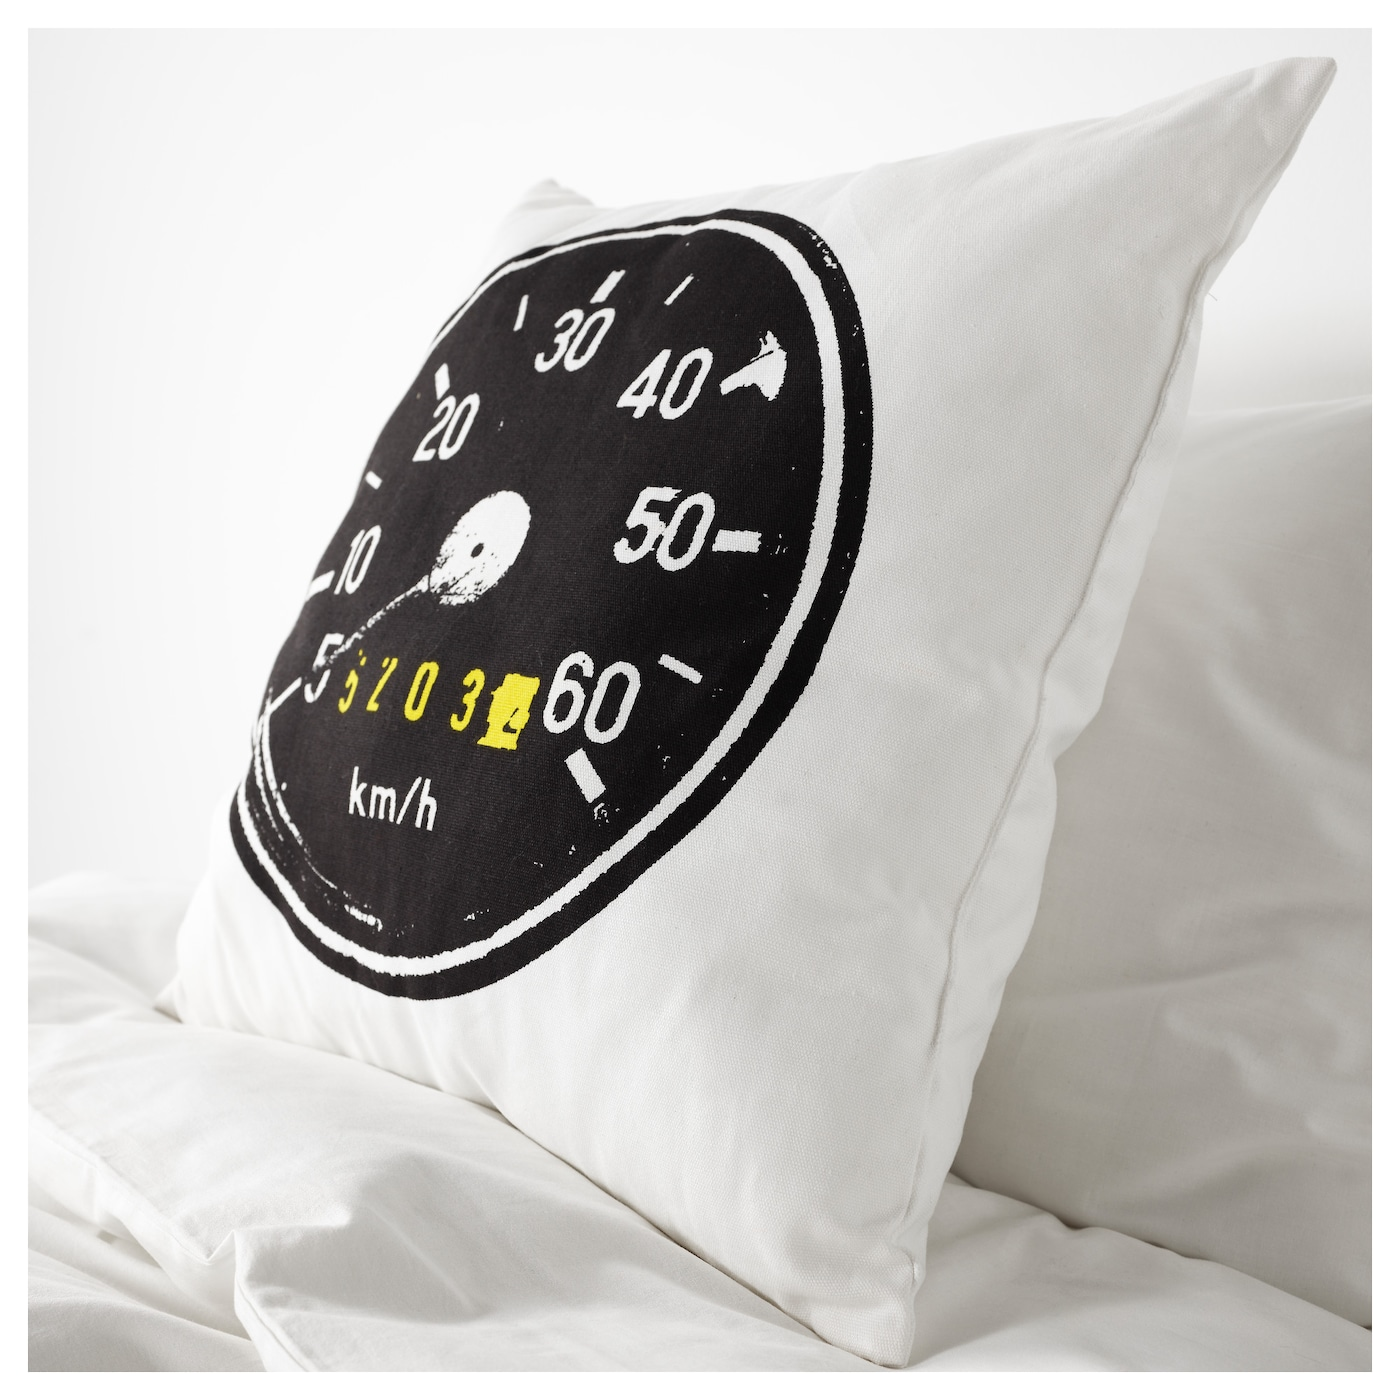 IKEA ÅKTUR cushion Gives good support when reading or playing computer games.